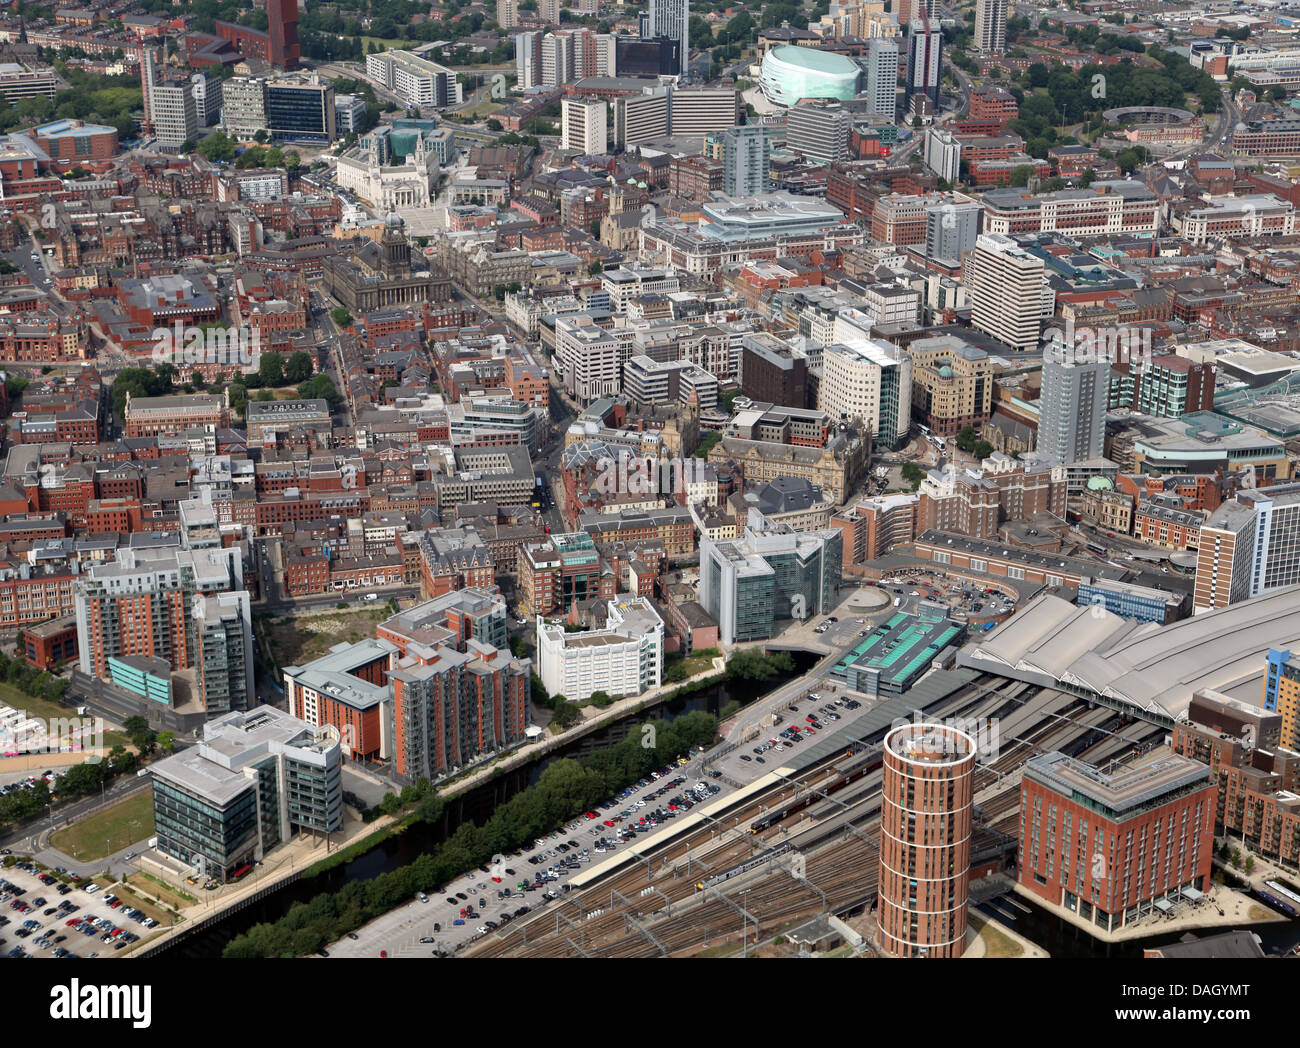 aerial view of Leeds City Centre - Stock Image